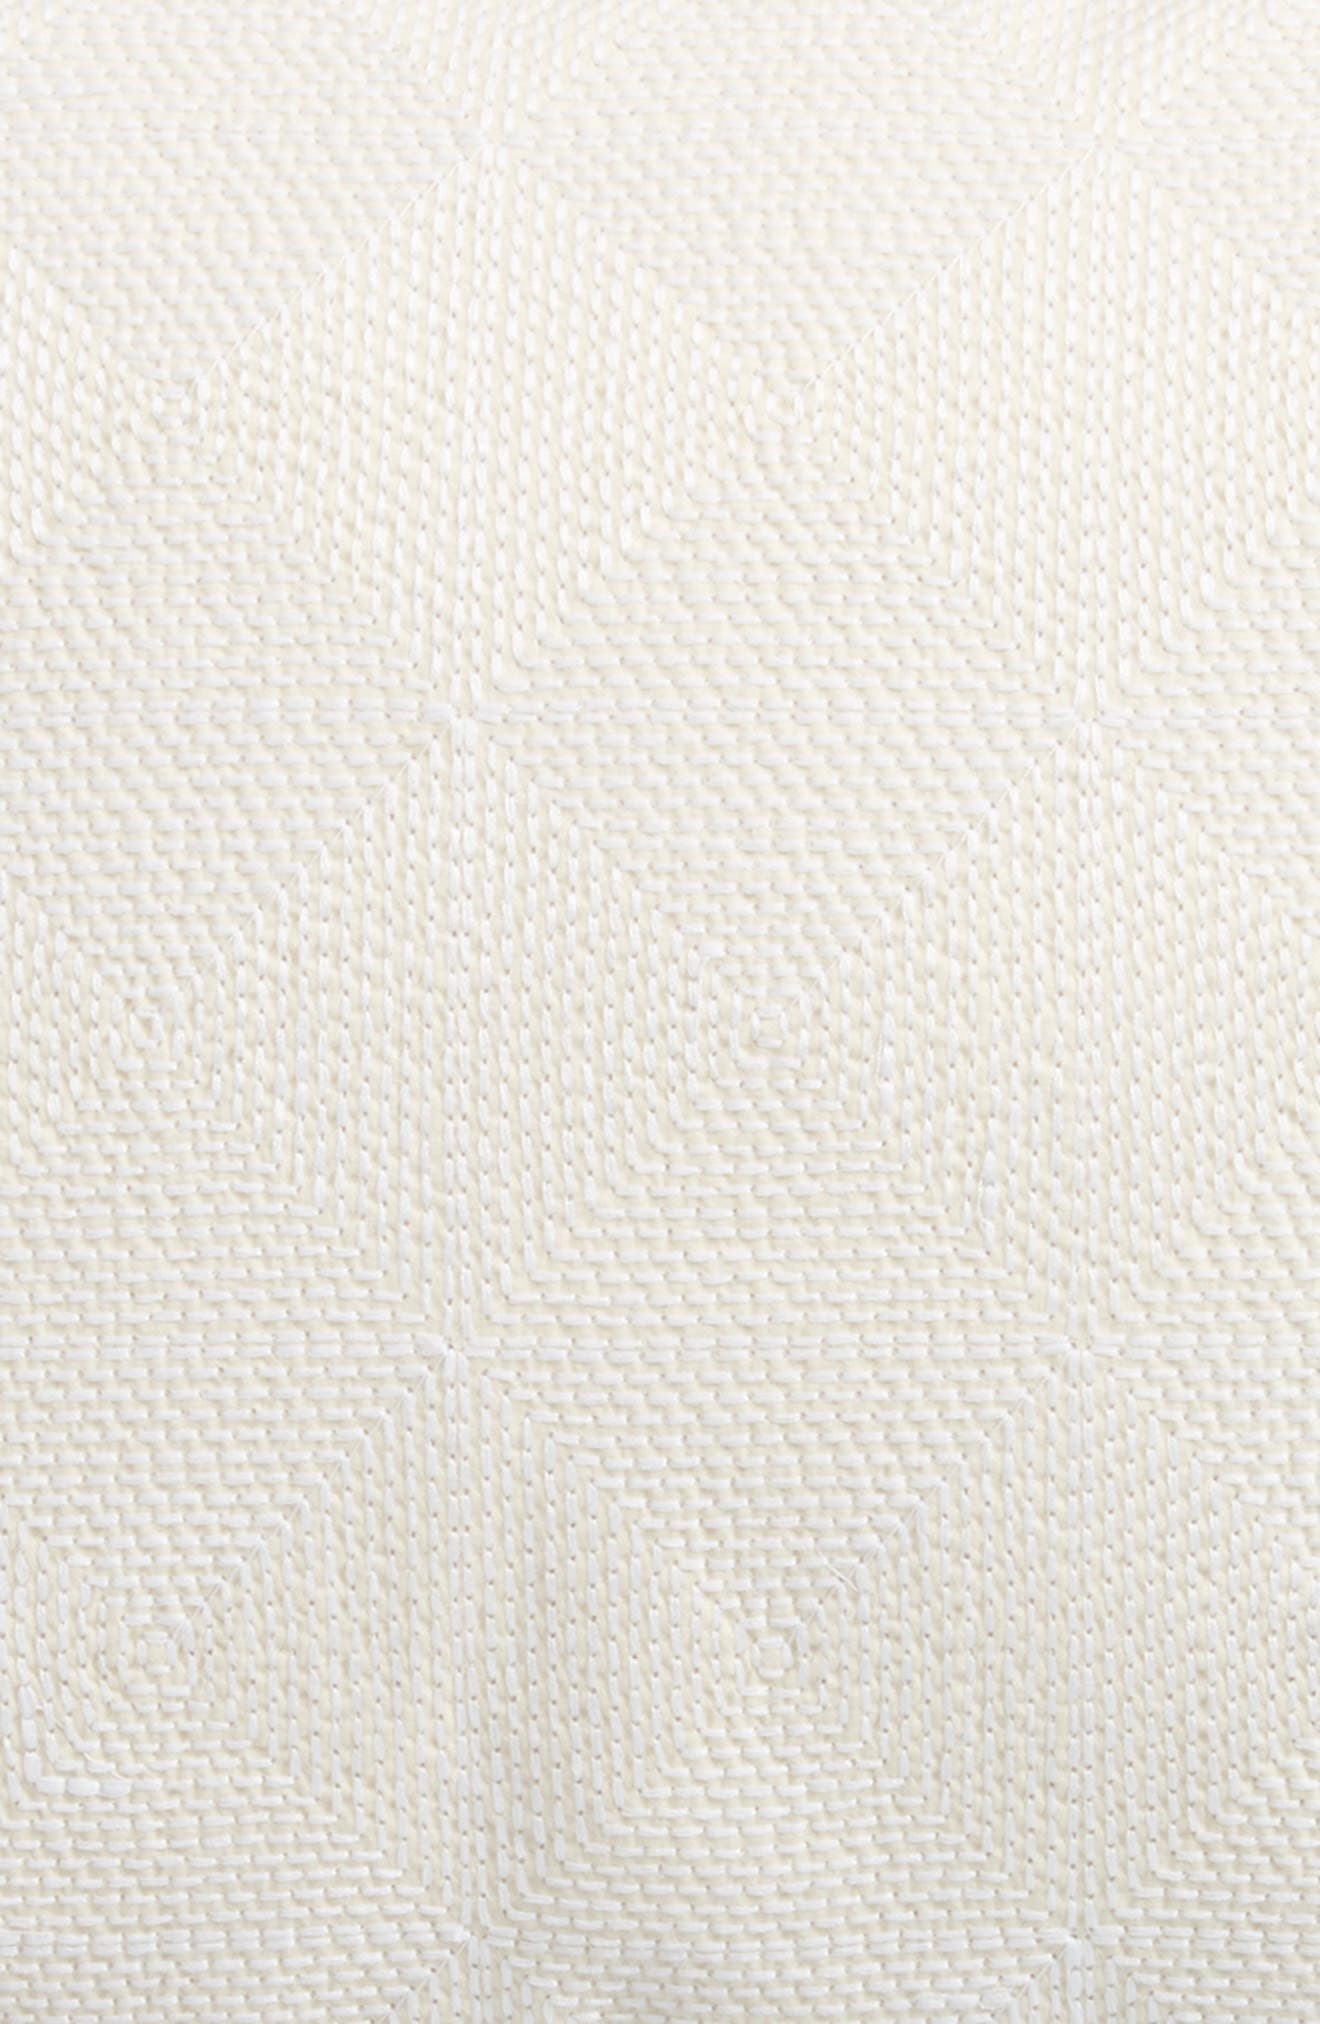 Alternate Image 3  - Vera Wang Fretwork Breakfast Pillow